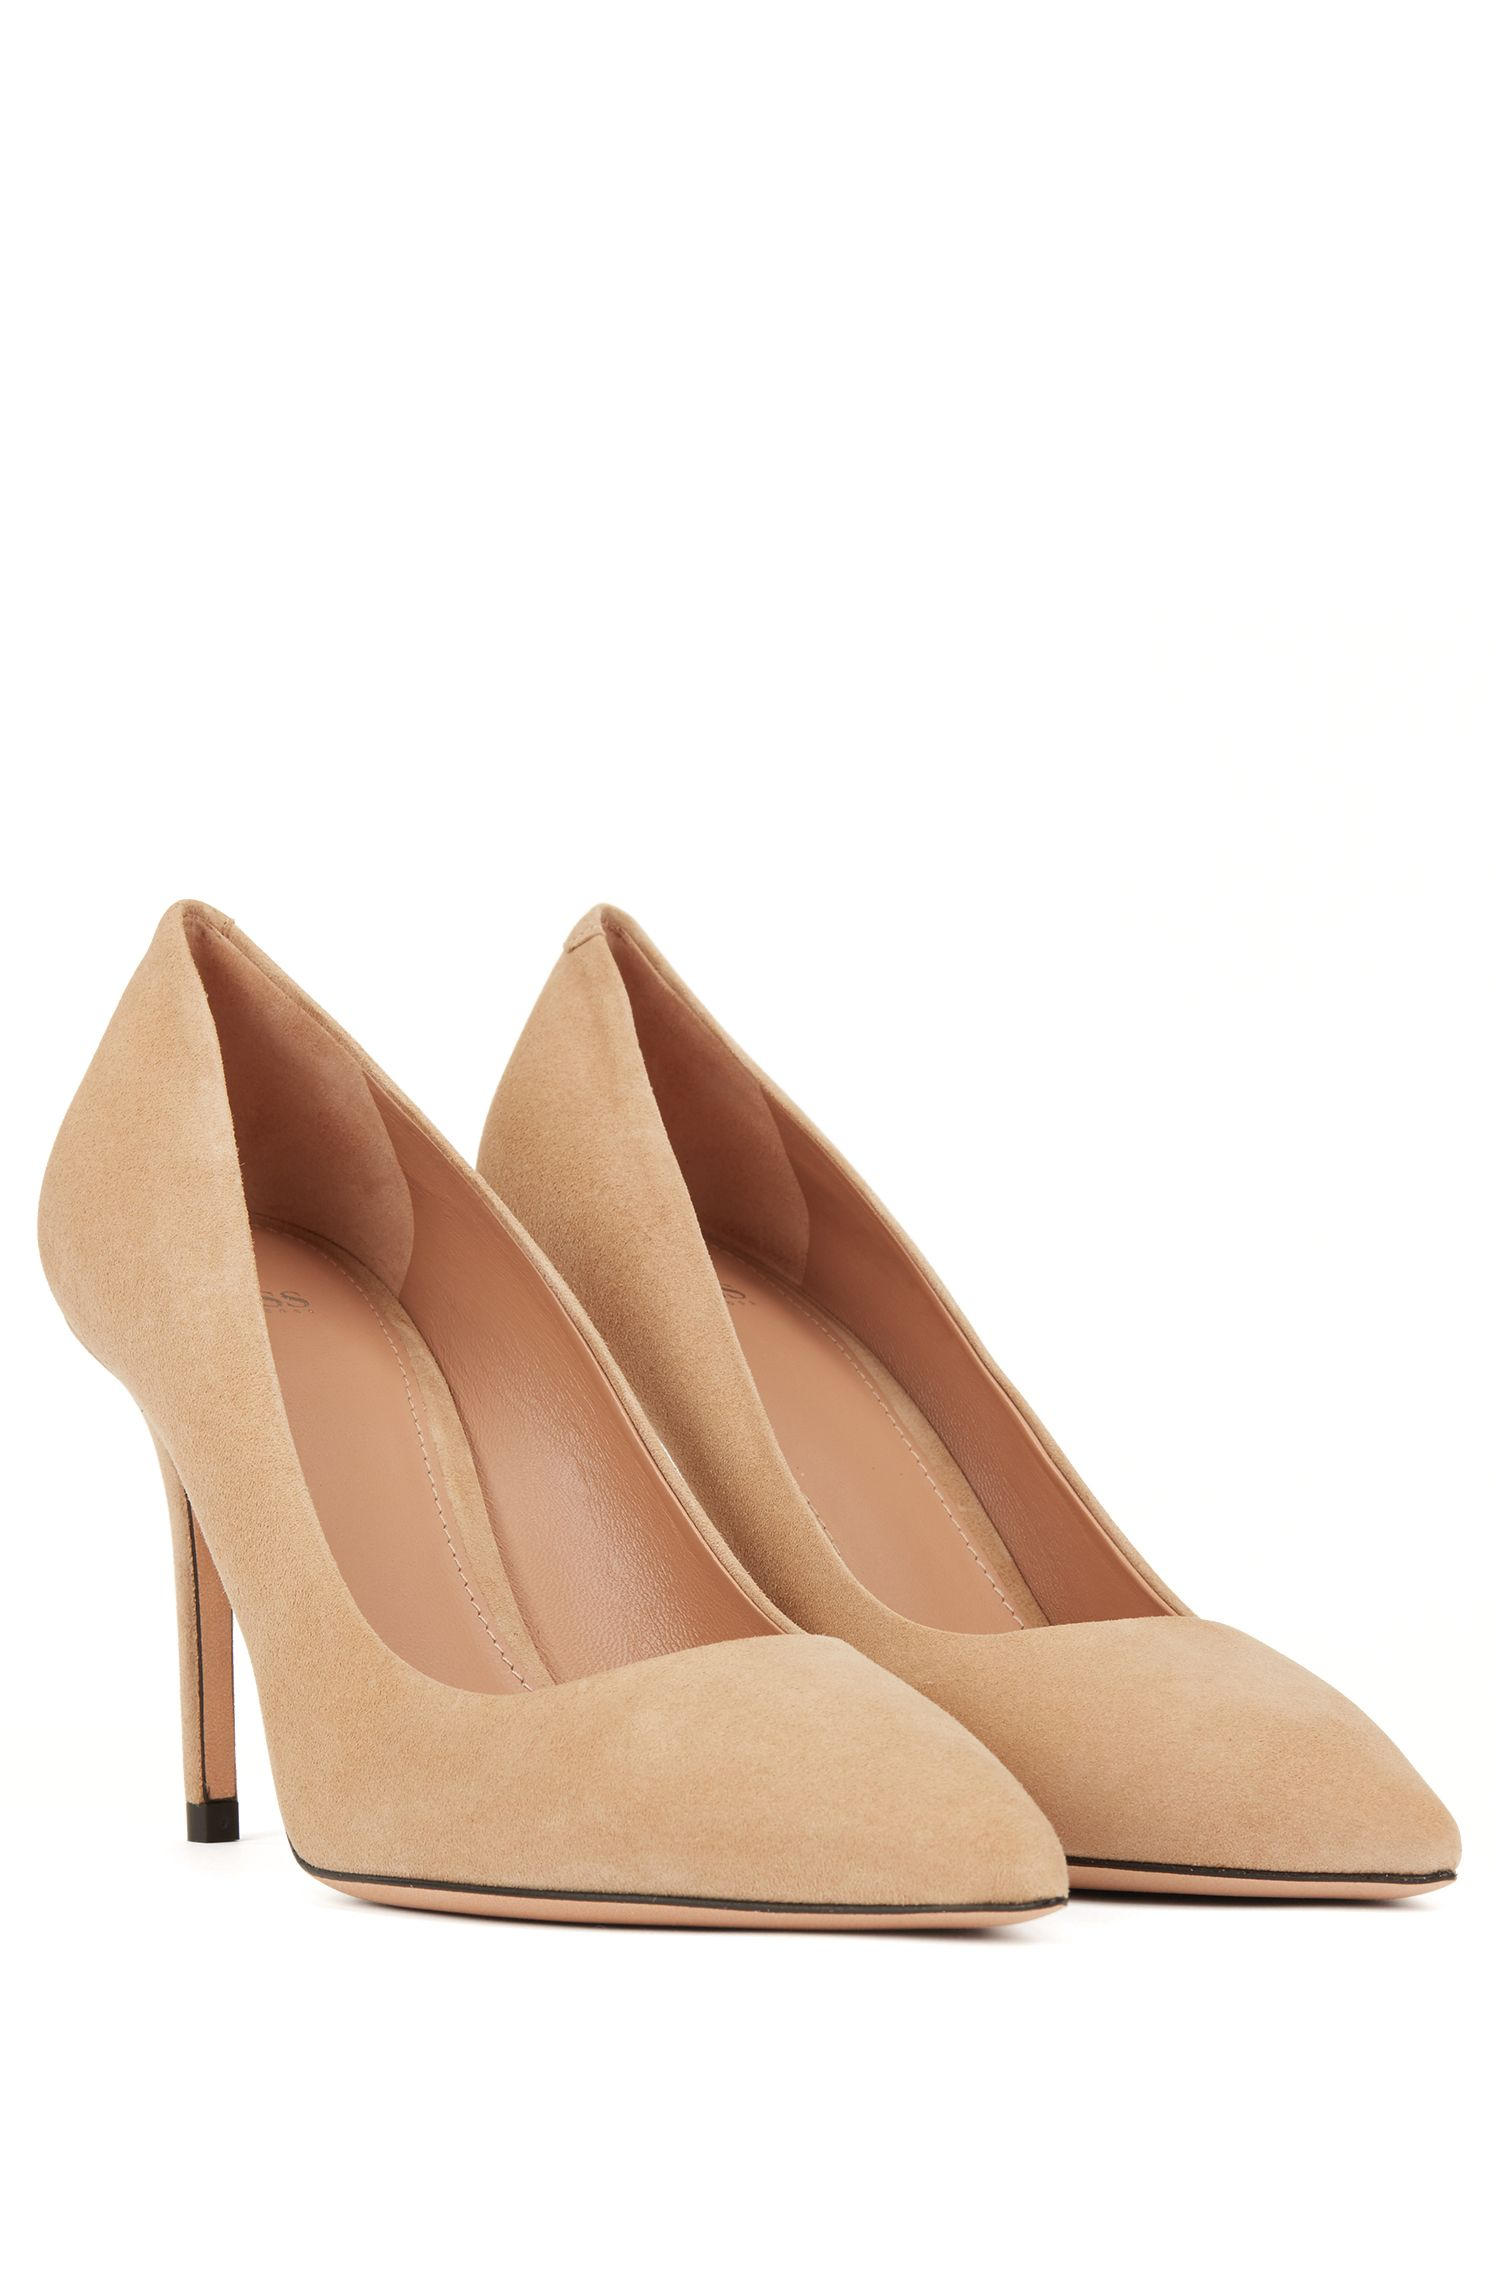 Hugo Boss - Pointed-toe court shoes in Italian suede - 2